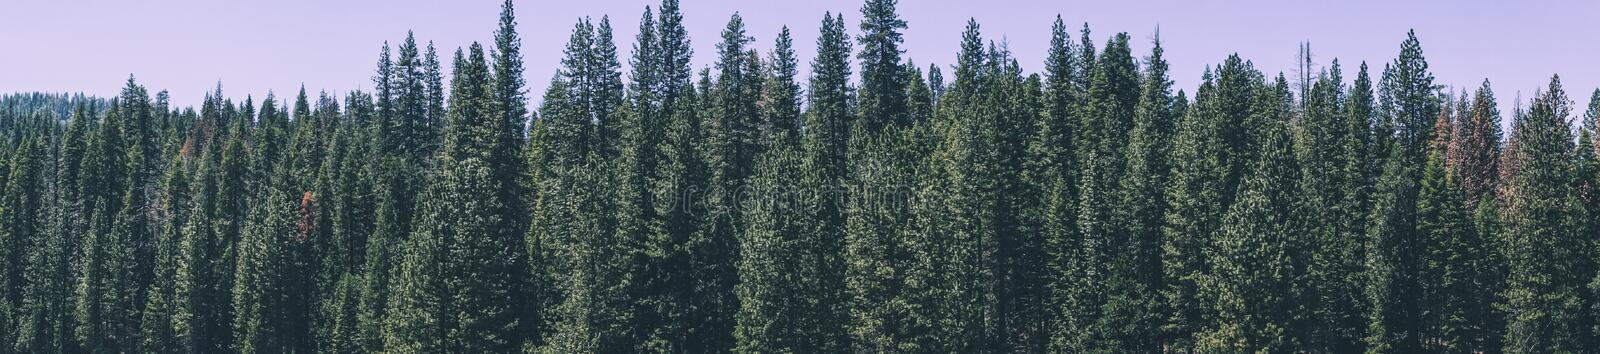 Summer holidays in the USA. Picturesque coniferous forests of the Yosemite Valley. Summer trip to Yosemite National Park, California. Picturesque valley and stock photos